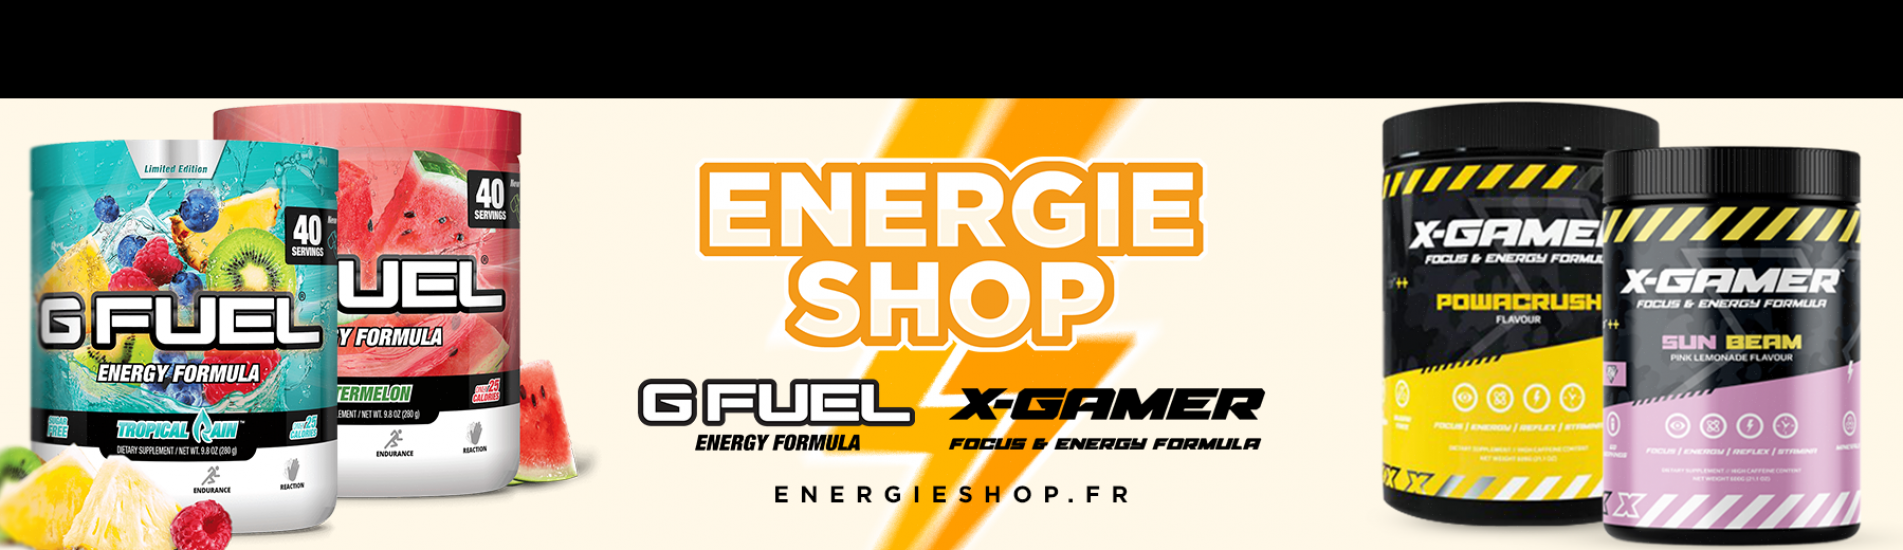 ENERGIESHOP_WEBSITE-BANNER_home